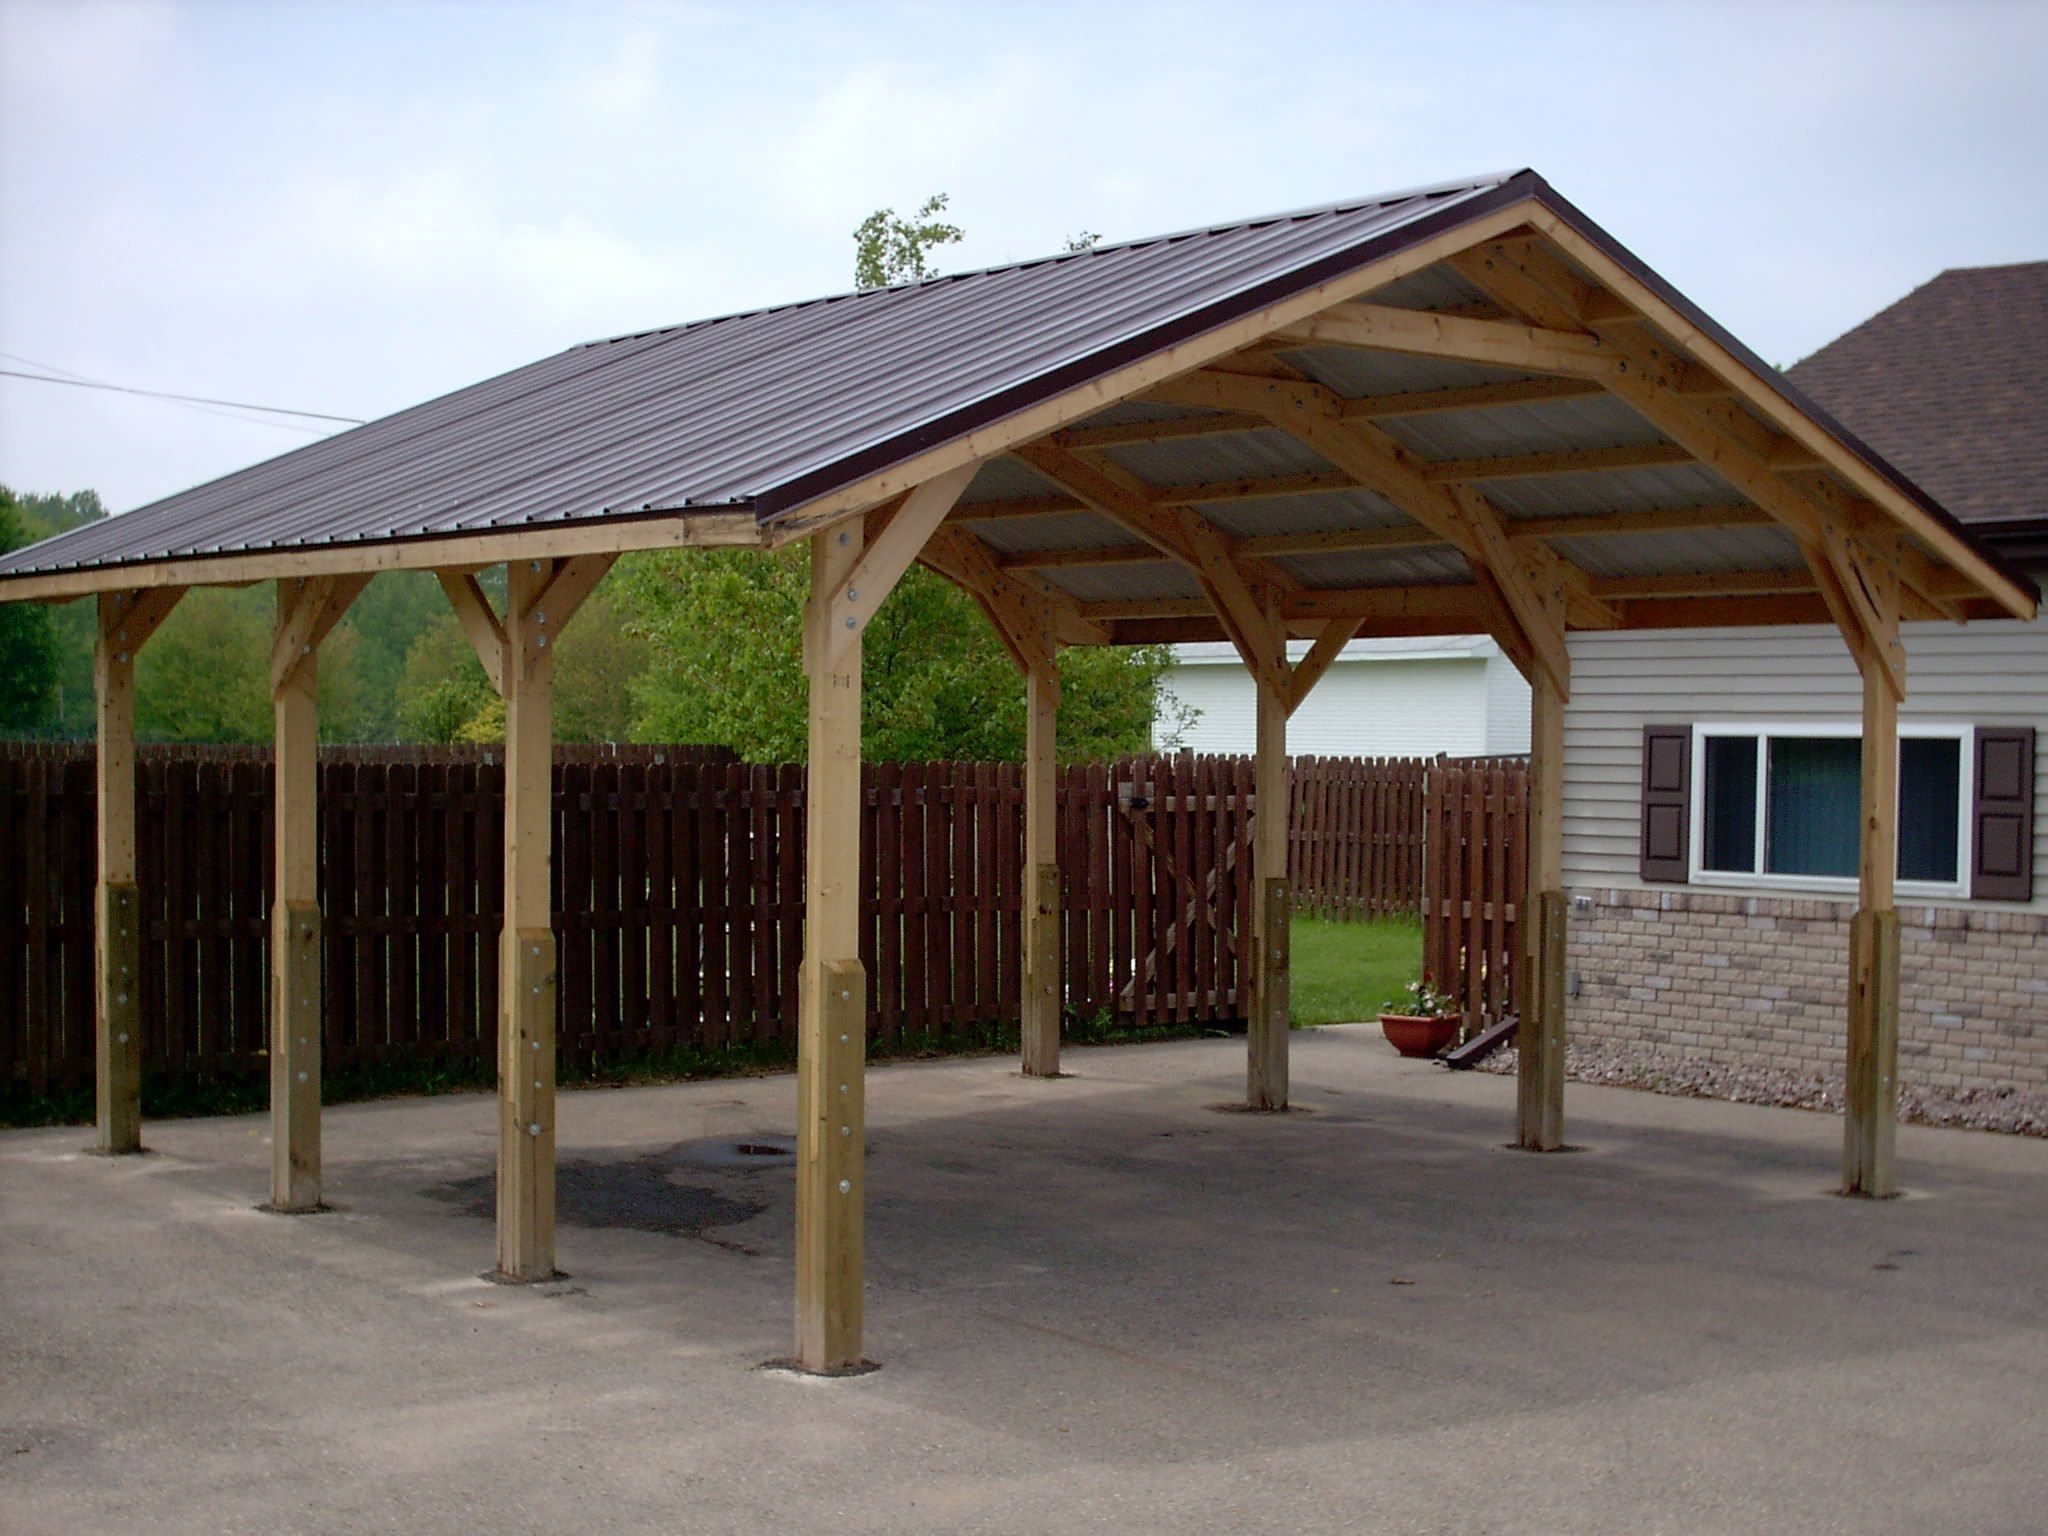 How To Frame A Carport Roof Using Rafters Google Search Diy Carport Carport Designs Wooden Carports